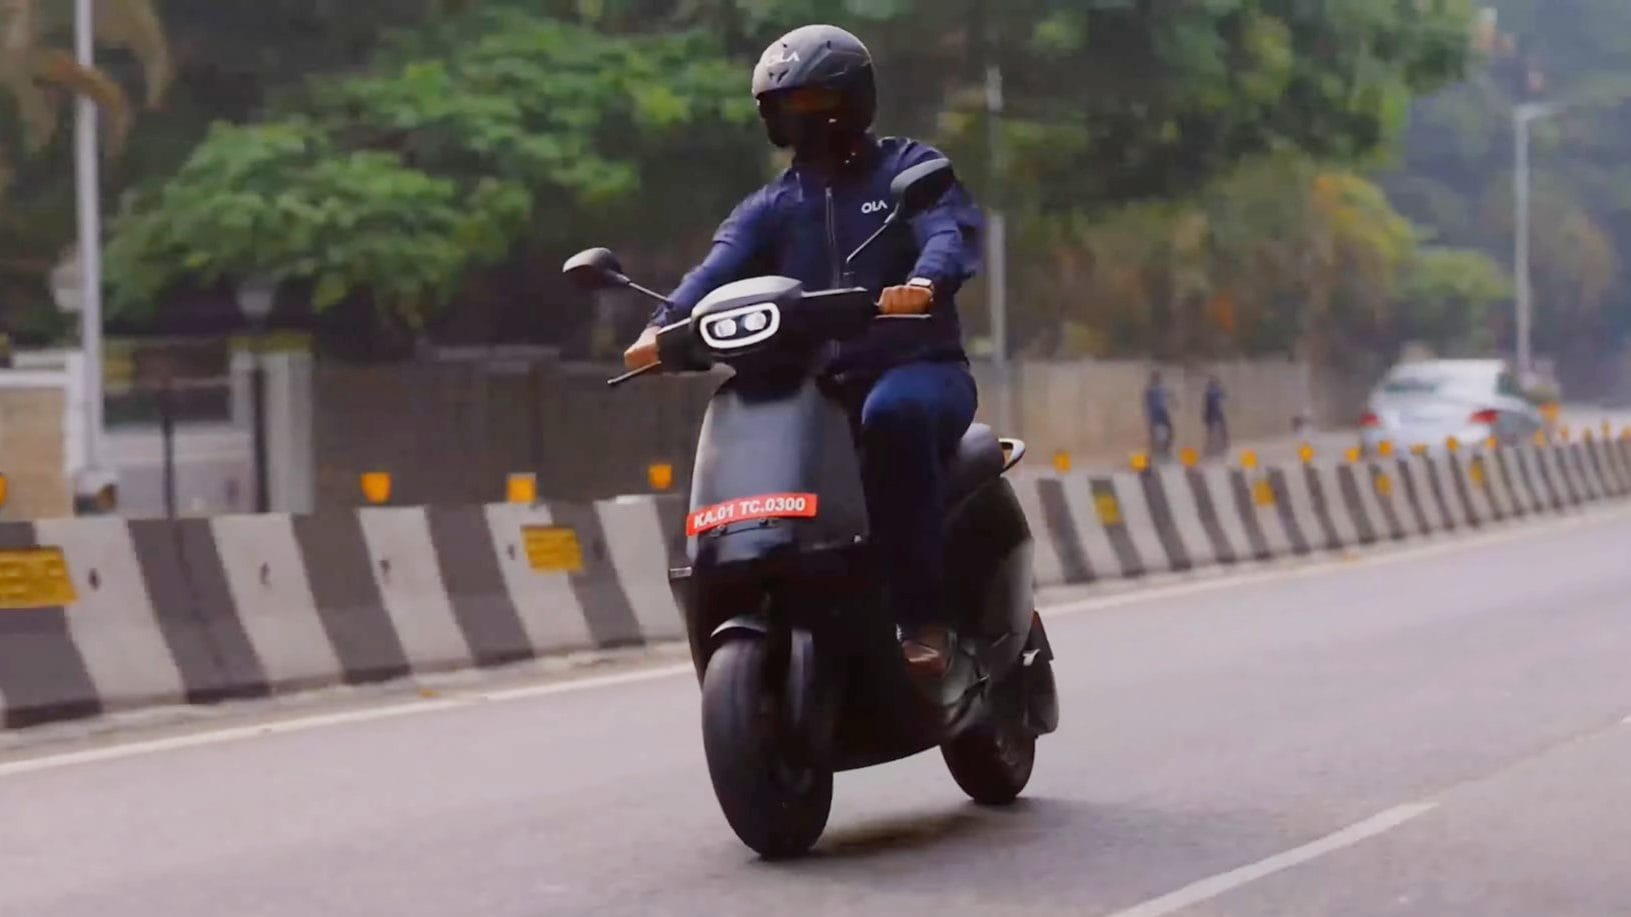 Launch of Ola's electric scooter is understood to be just around the corner. Image: Ola Electric